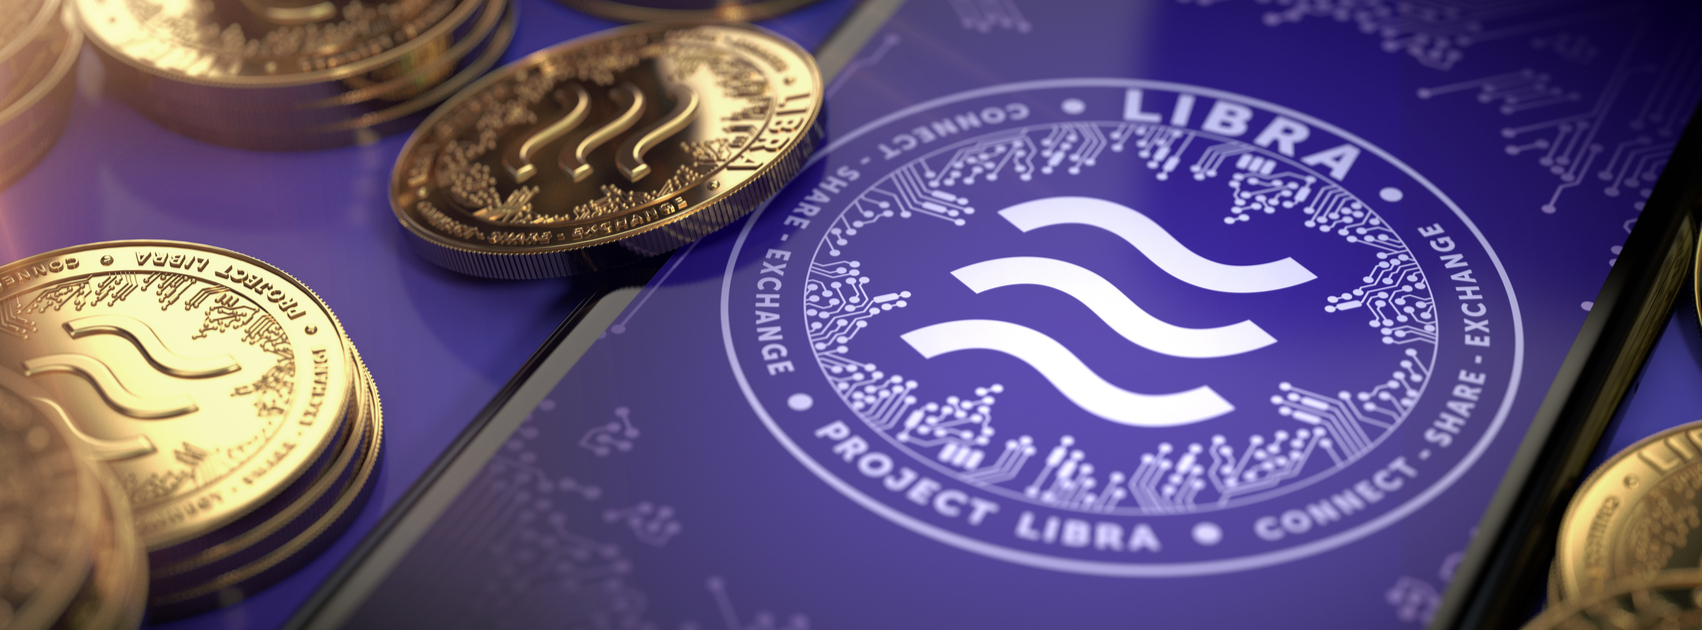 The Swiss Are Onto Something: Facebook, Libra and the Case for Decentralization